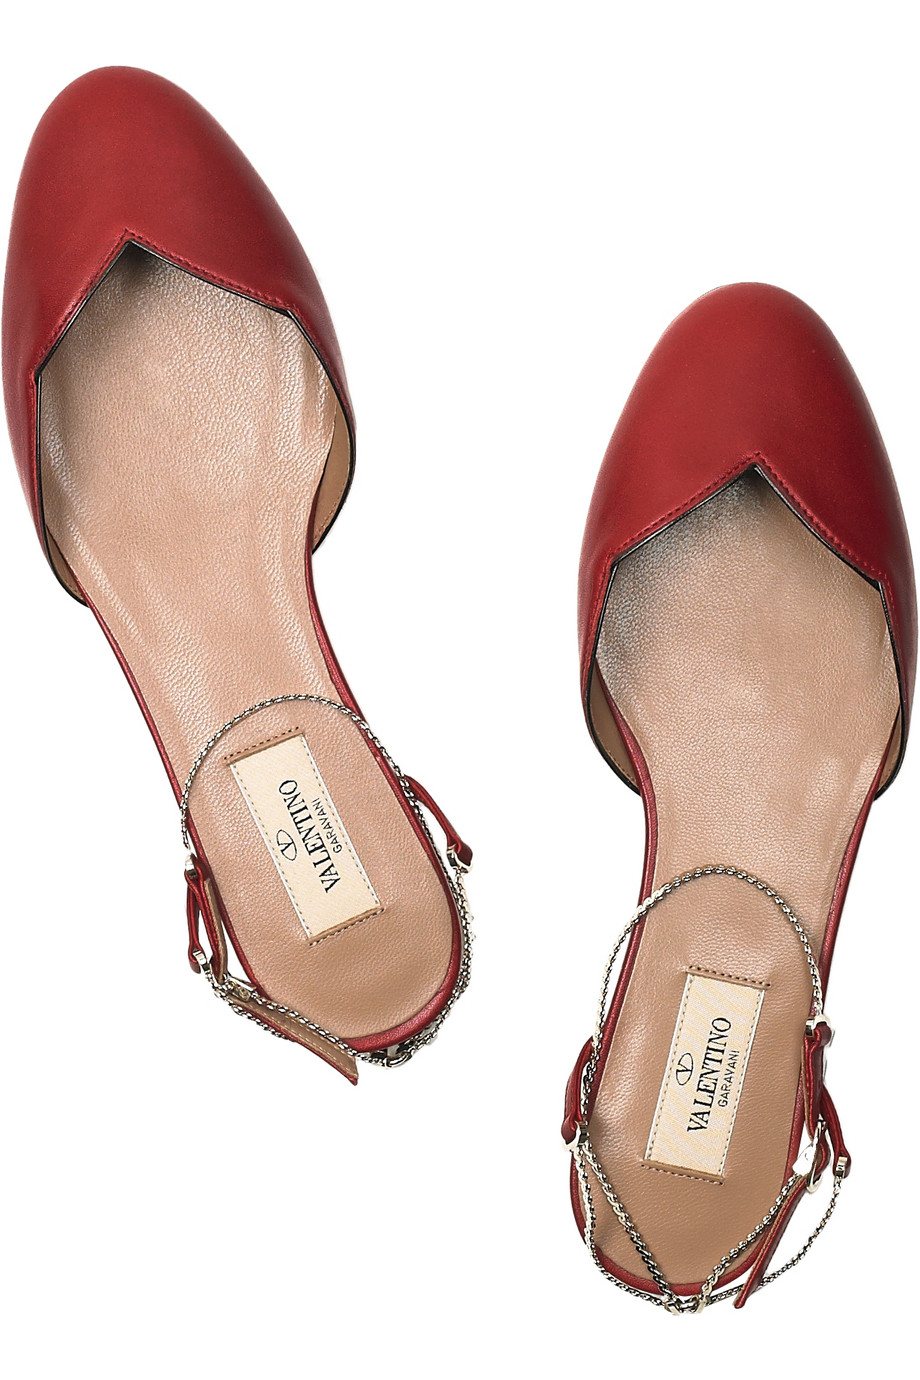 2f7602531 Valentino Chain-strap Scalloped Leather Flats in Red - Lyst